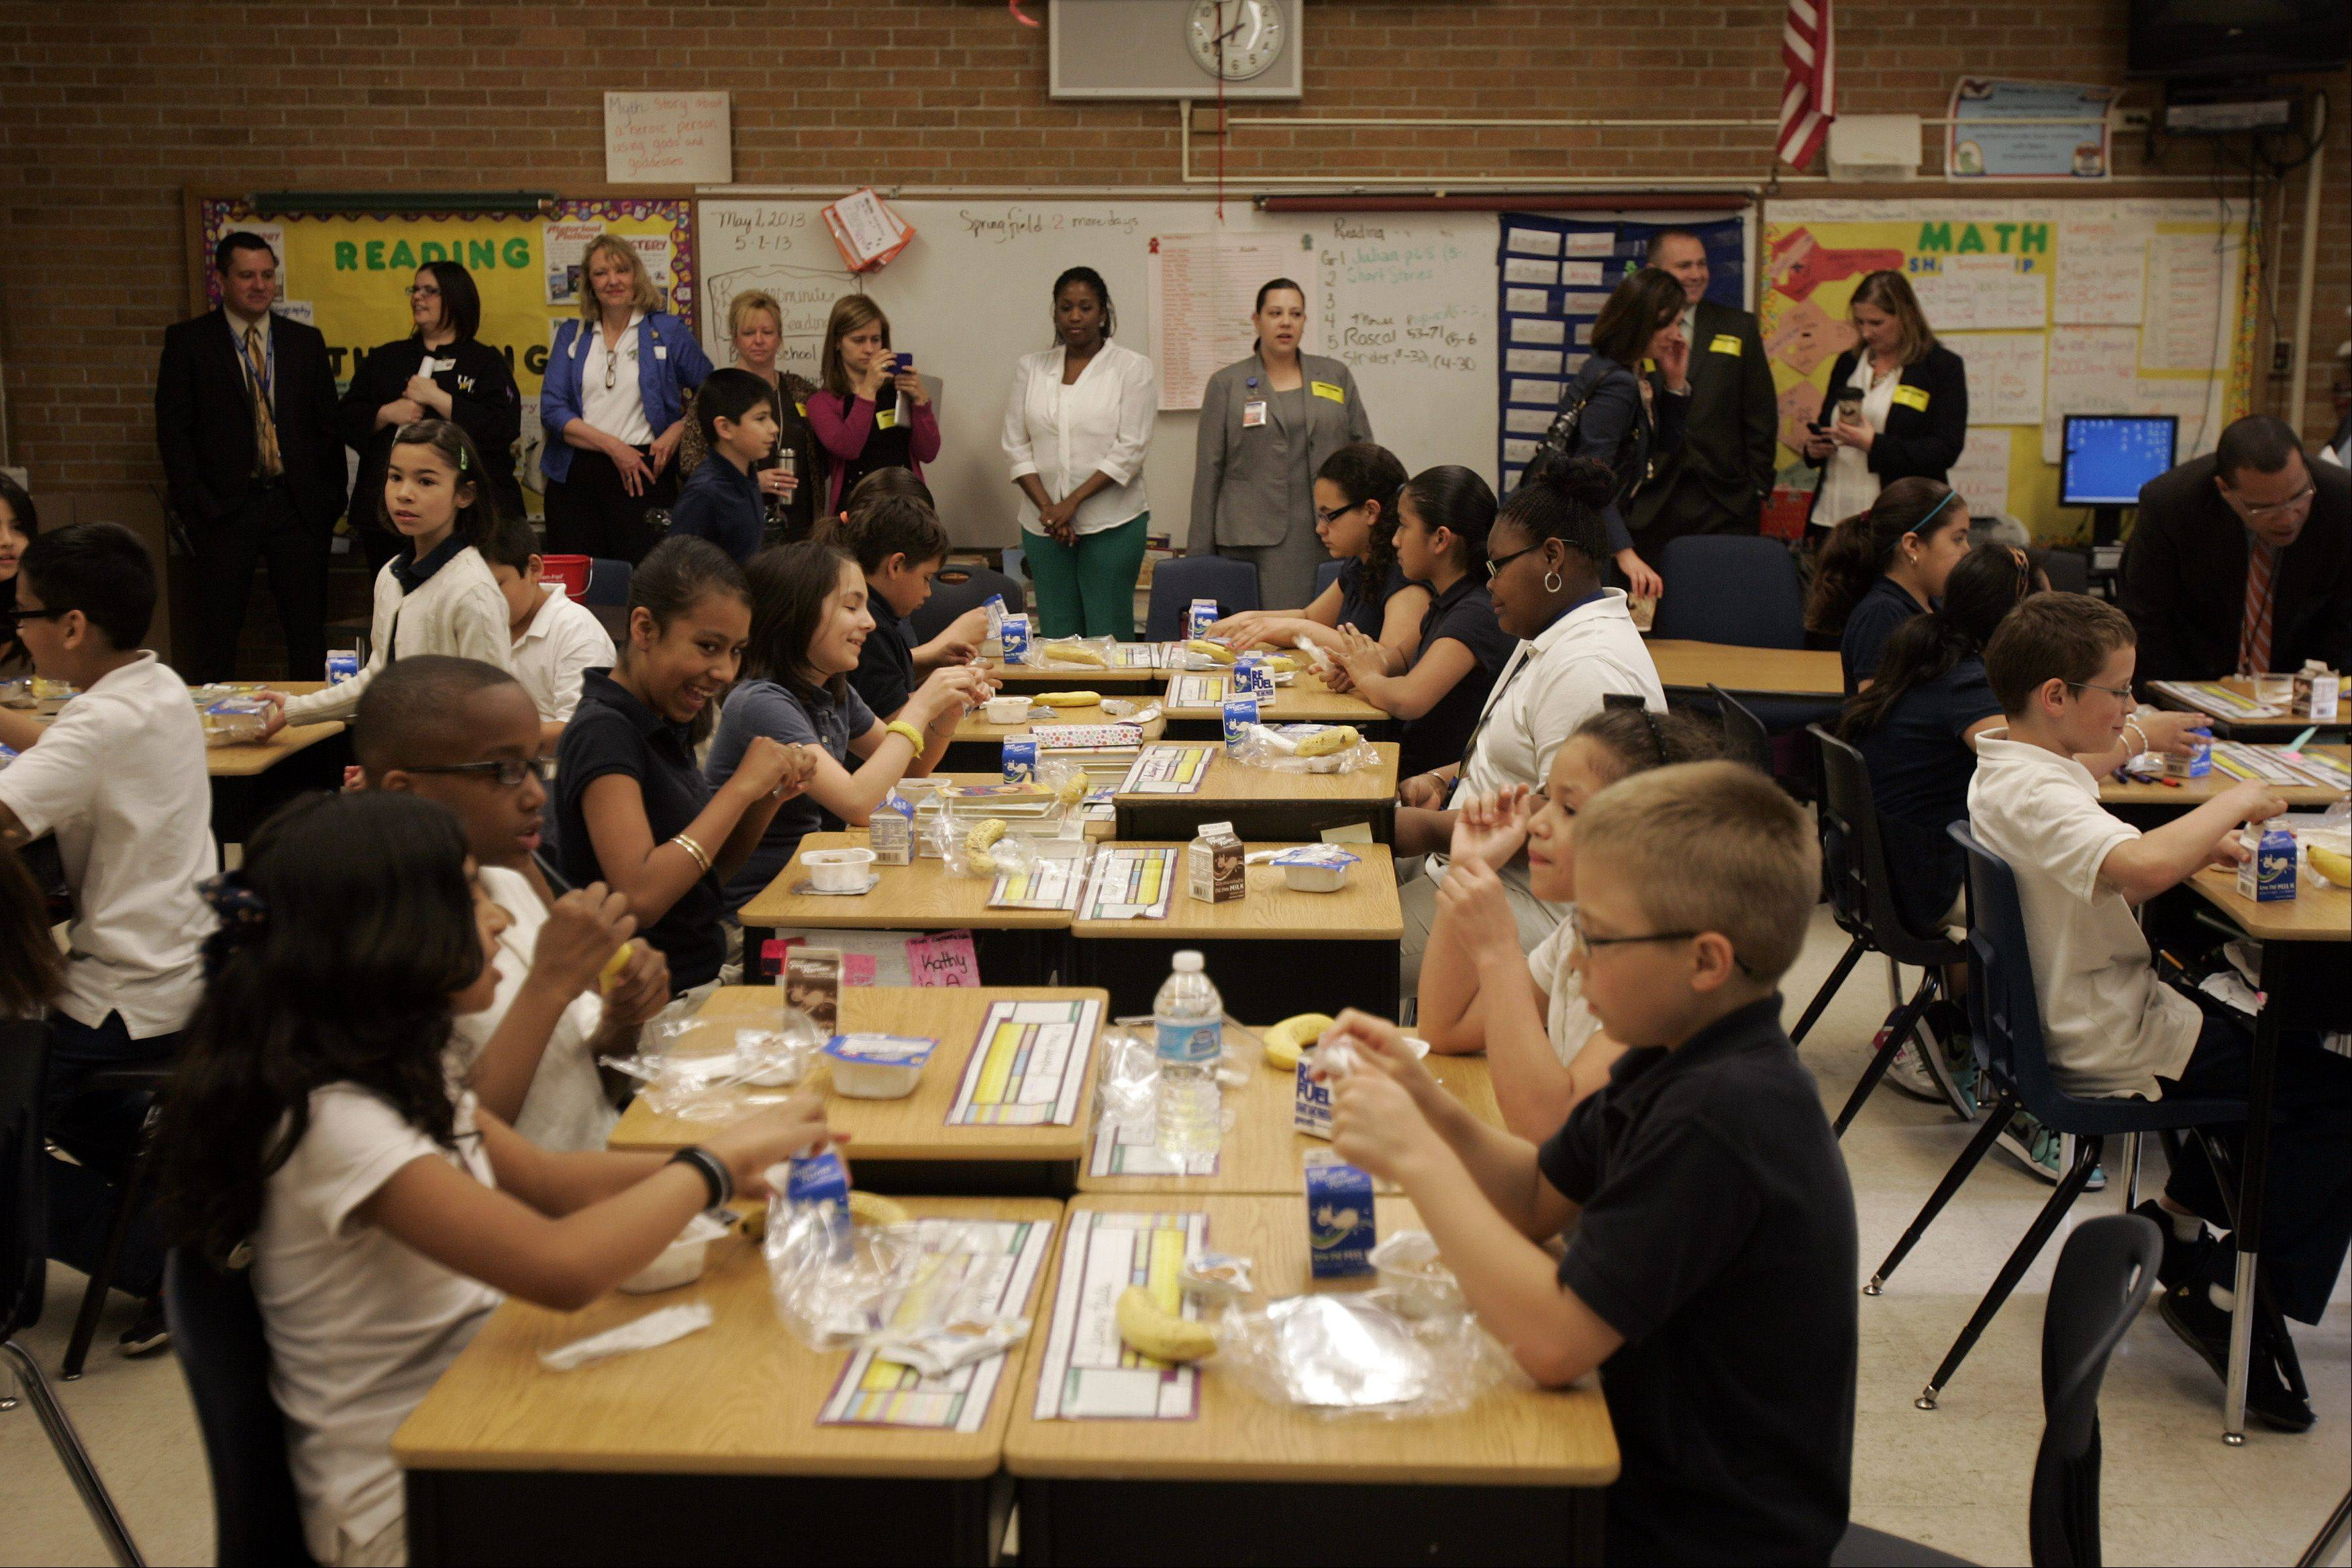 Observers get a firsthand look as students at Harriet Gifford Elementary School in Elgin enjoy breakfast Thursday as part of the Breakfast in the Classroom program.